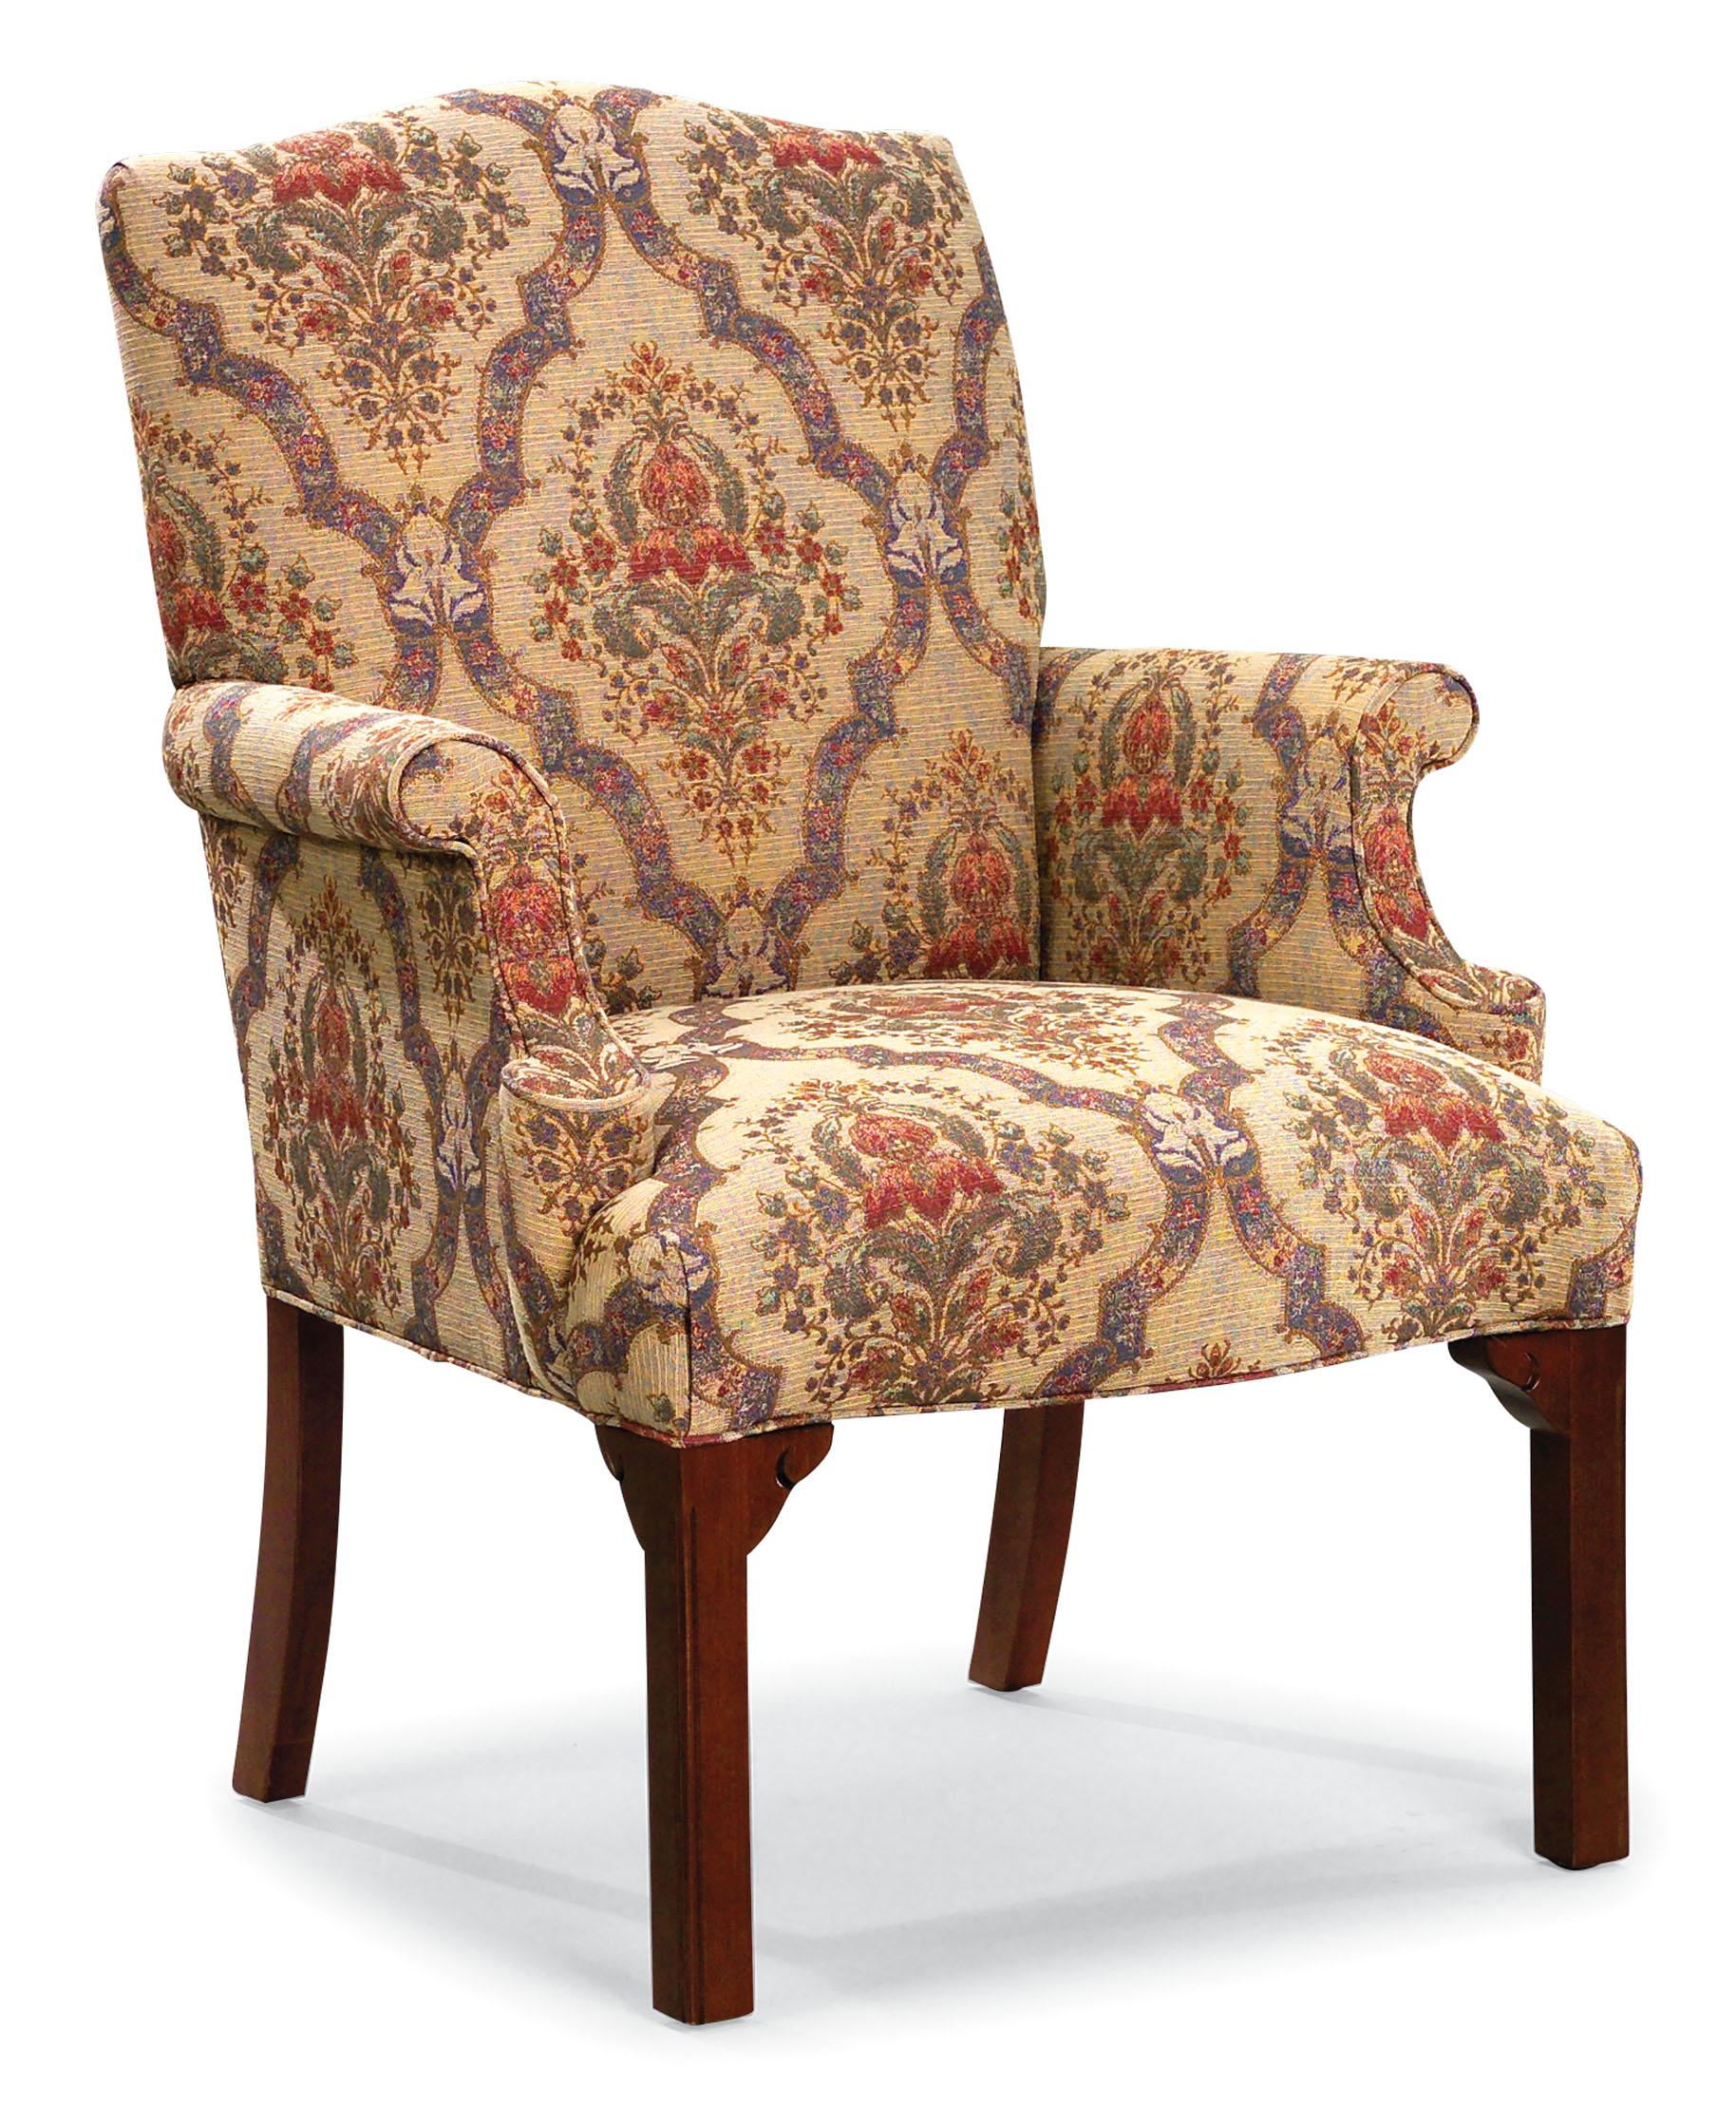 Fairfield Chairs Upholstered Occasional Chair - Item Number: 5382-01